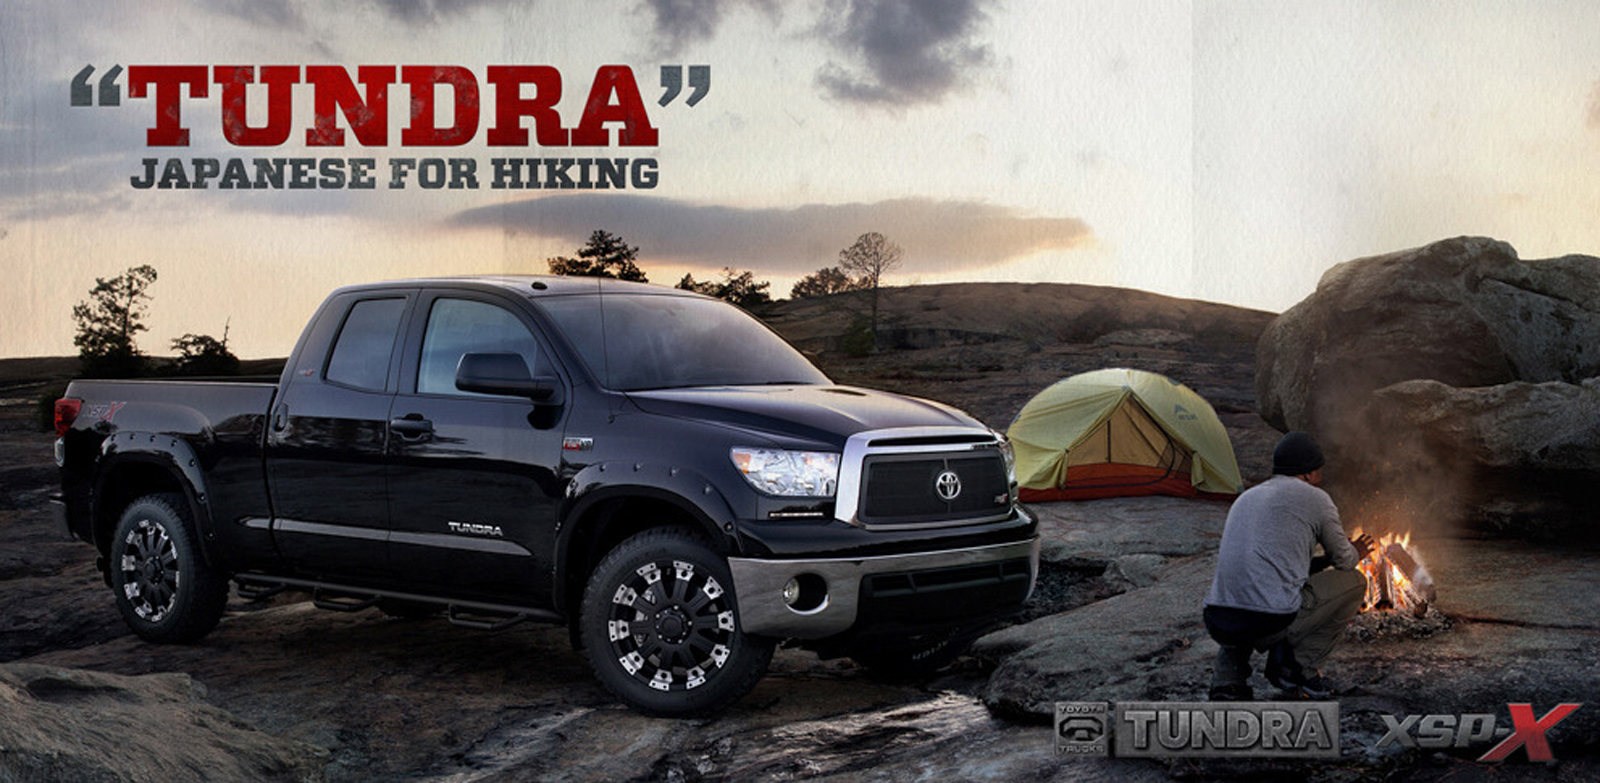 "Toyota Birmingham Al >> Toyota Outdoor Advert By Intermark: ""Tundra"" Japanese for hiking 